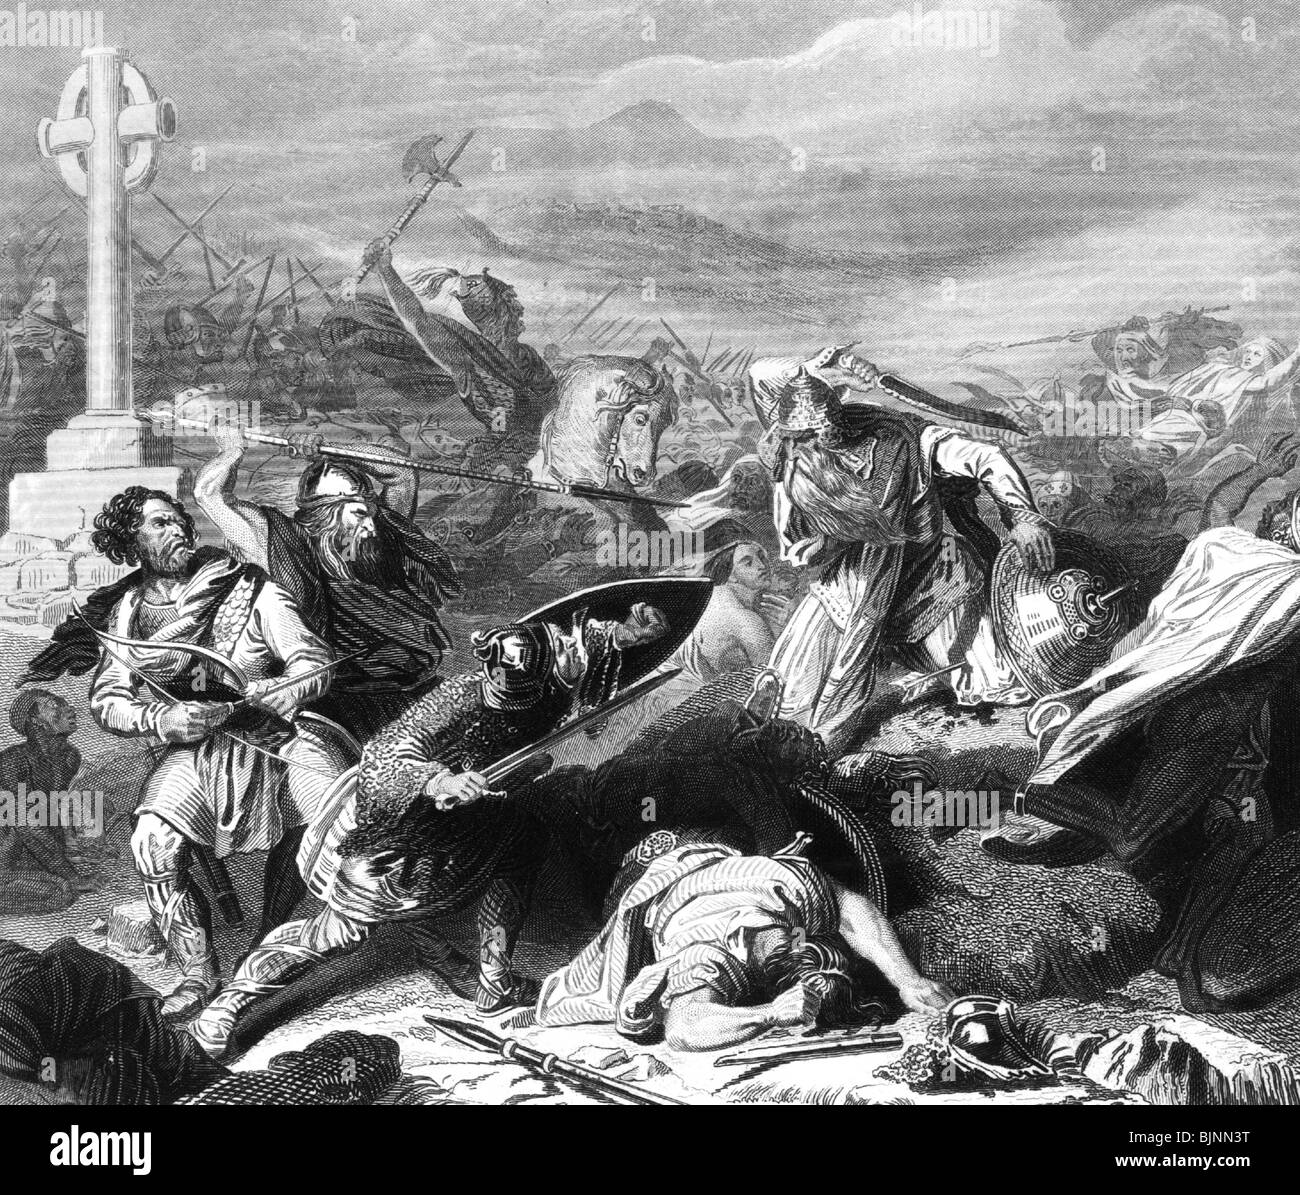 battle of tours The carolingian franks come in sight of the arabs in october of 732 ad the enemy spots charles and his army and at first hesitates the two armies remain camped, staring each other down, for seven days.